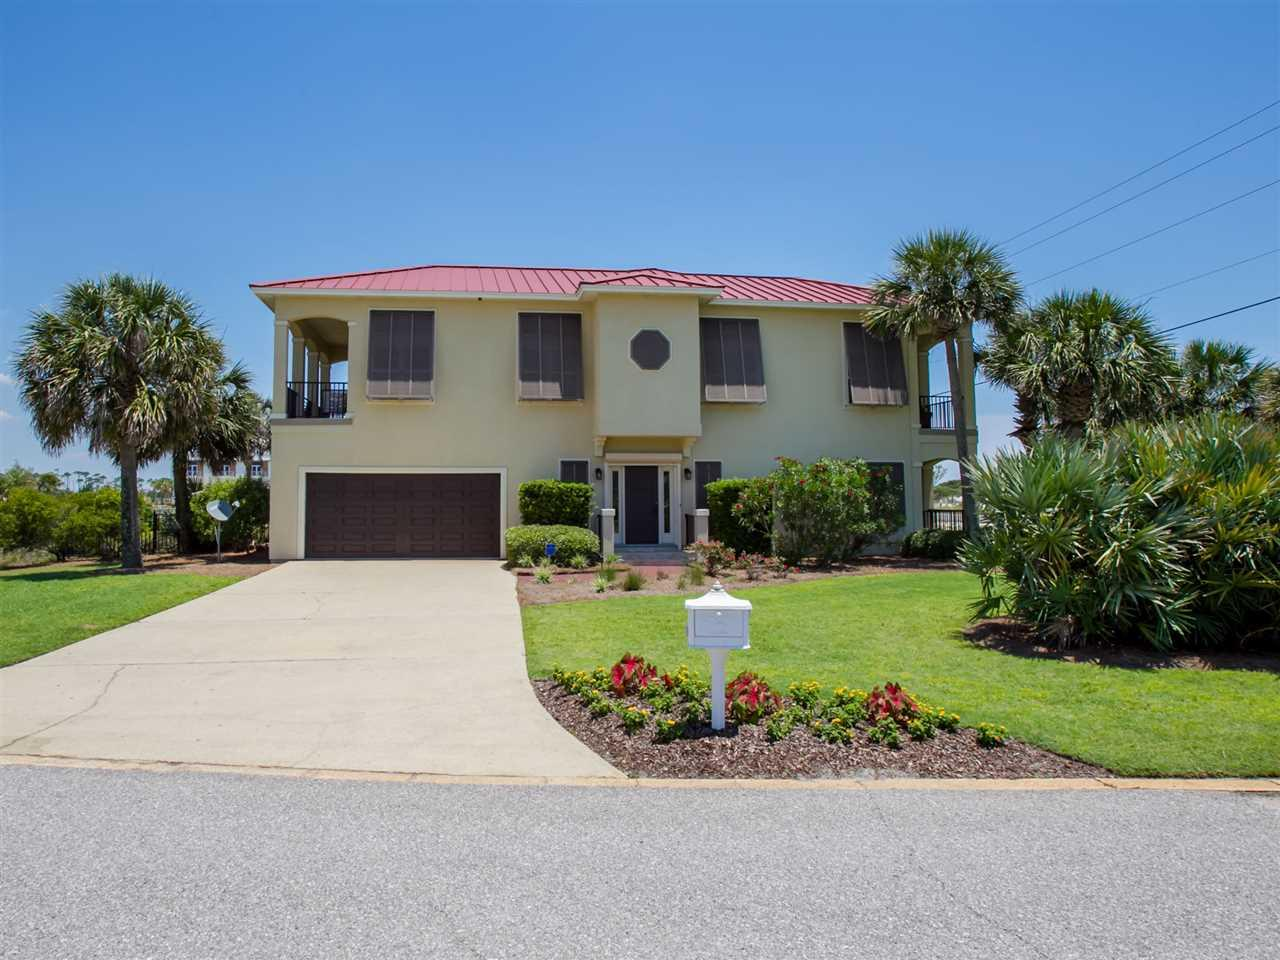 7292 CAPTAIN KIDD REEF, Perdido Key, Florida